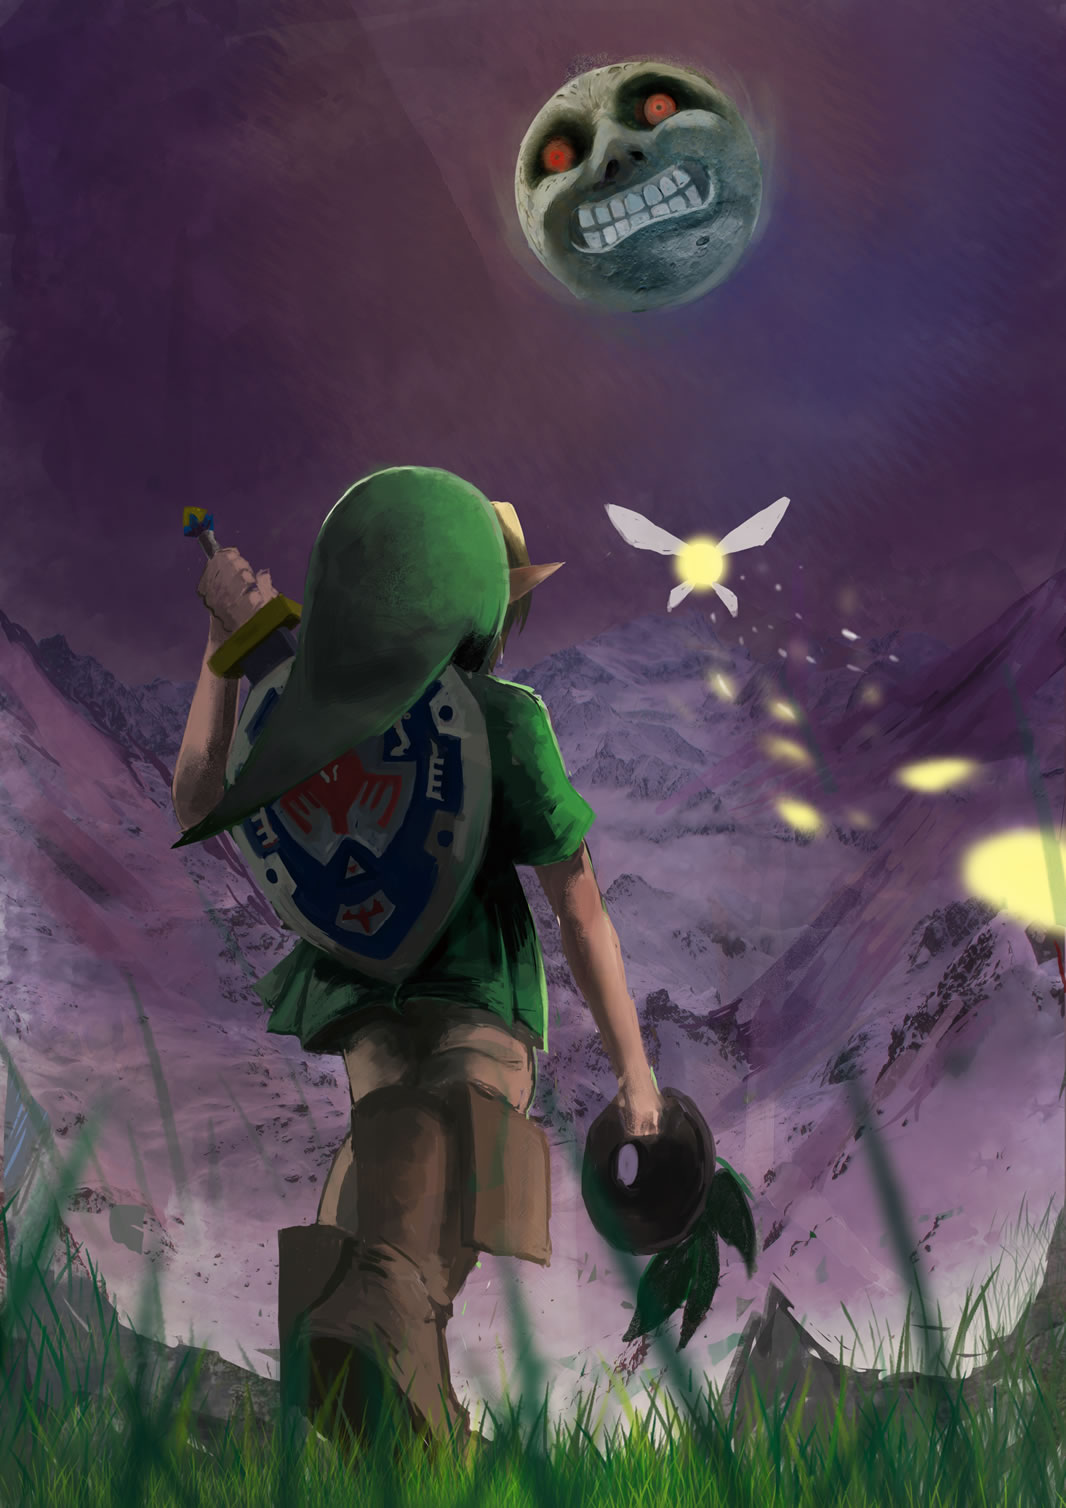 Majoras Mask Hd Wallpaper Posted By Christopher Mercado